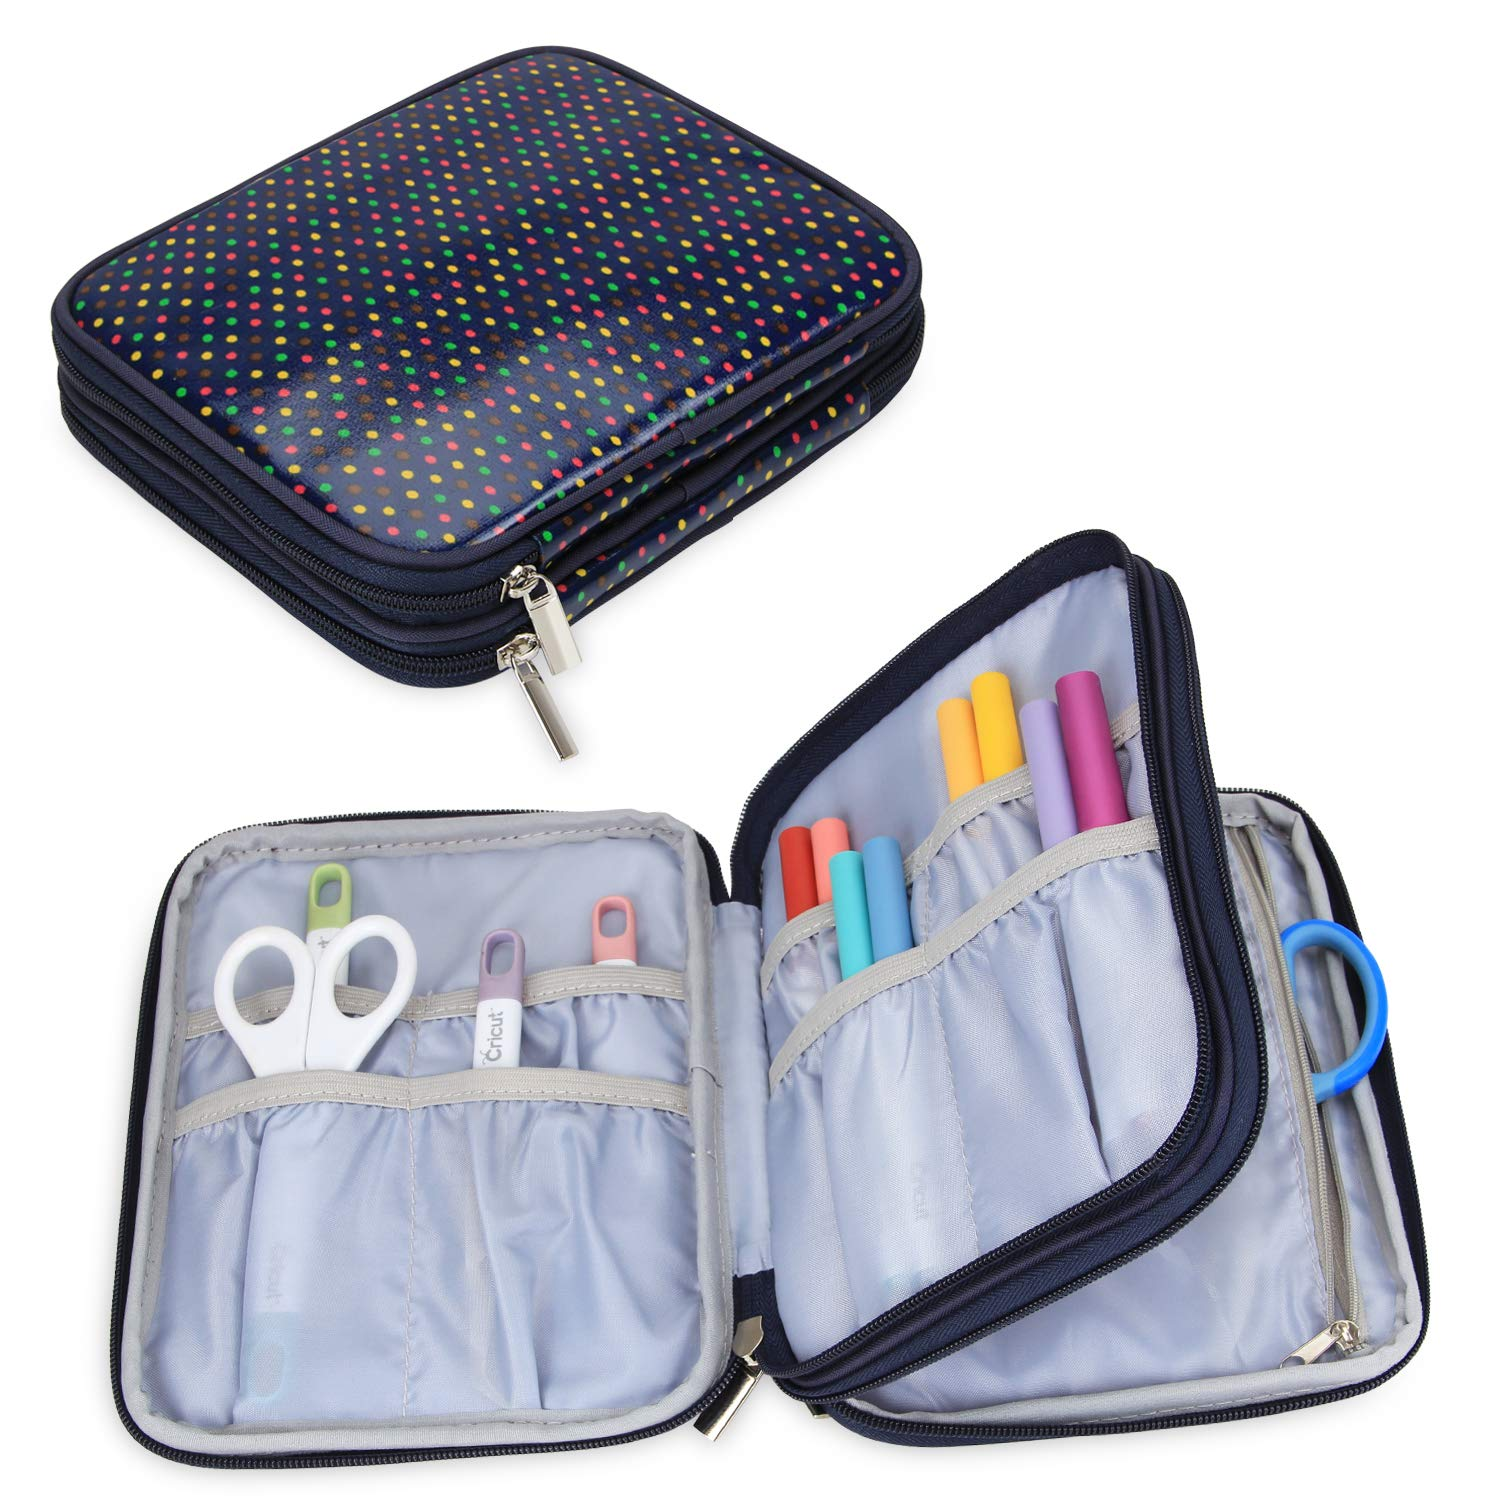 Yarwo Carrying Bag for Cricut Accessories, Organizer Case for Cricut Pen Set and Basic Tool Set Storage, Multi Dots Pattern, Bag Only